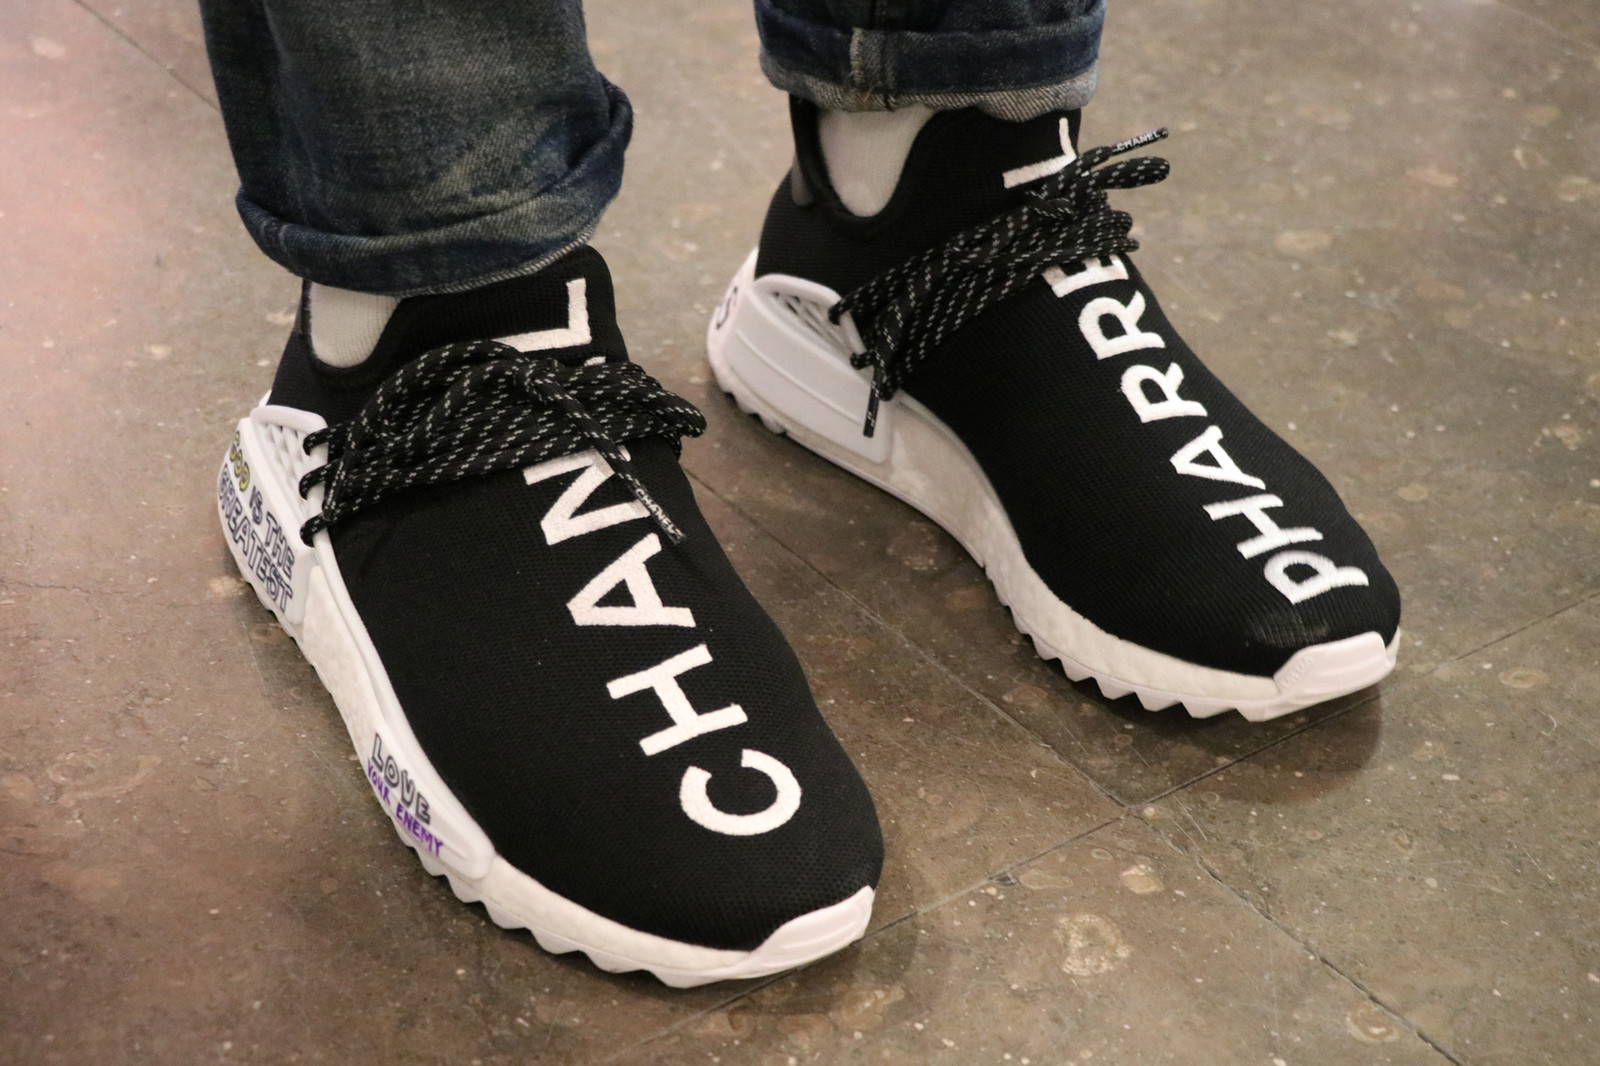 d693d99ea Pharrell Williams adidas Originals Hu NMD Chanel colette Paris Footwear  Sneaker